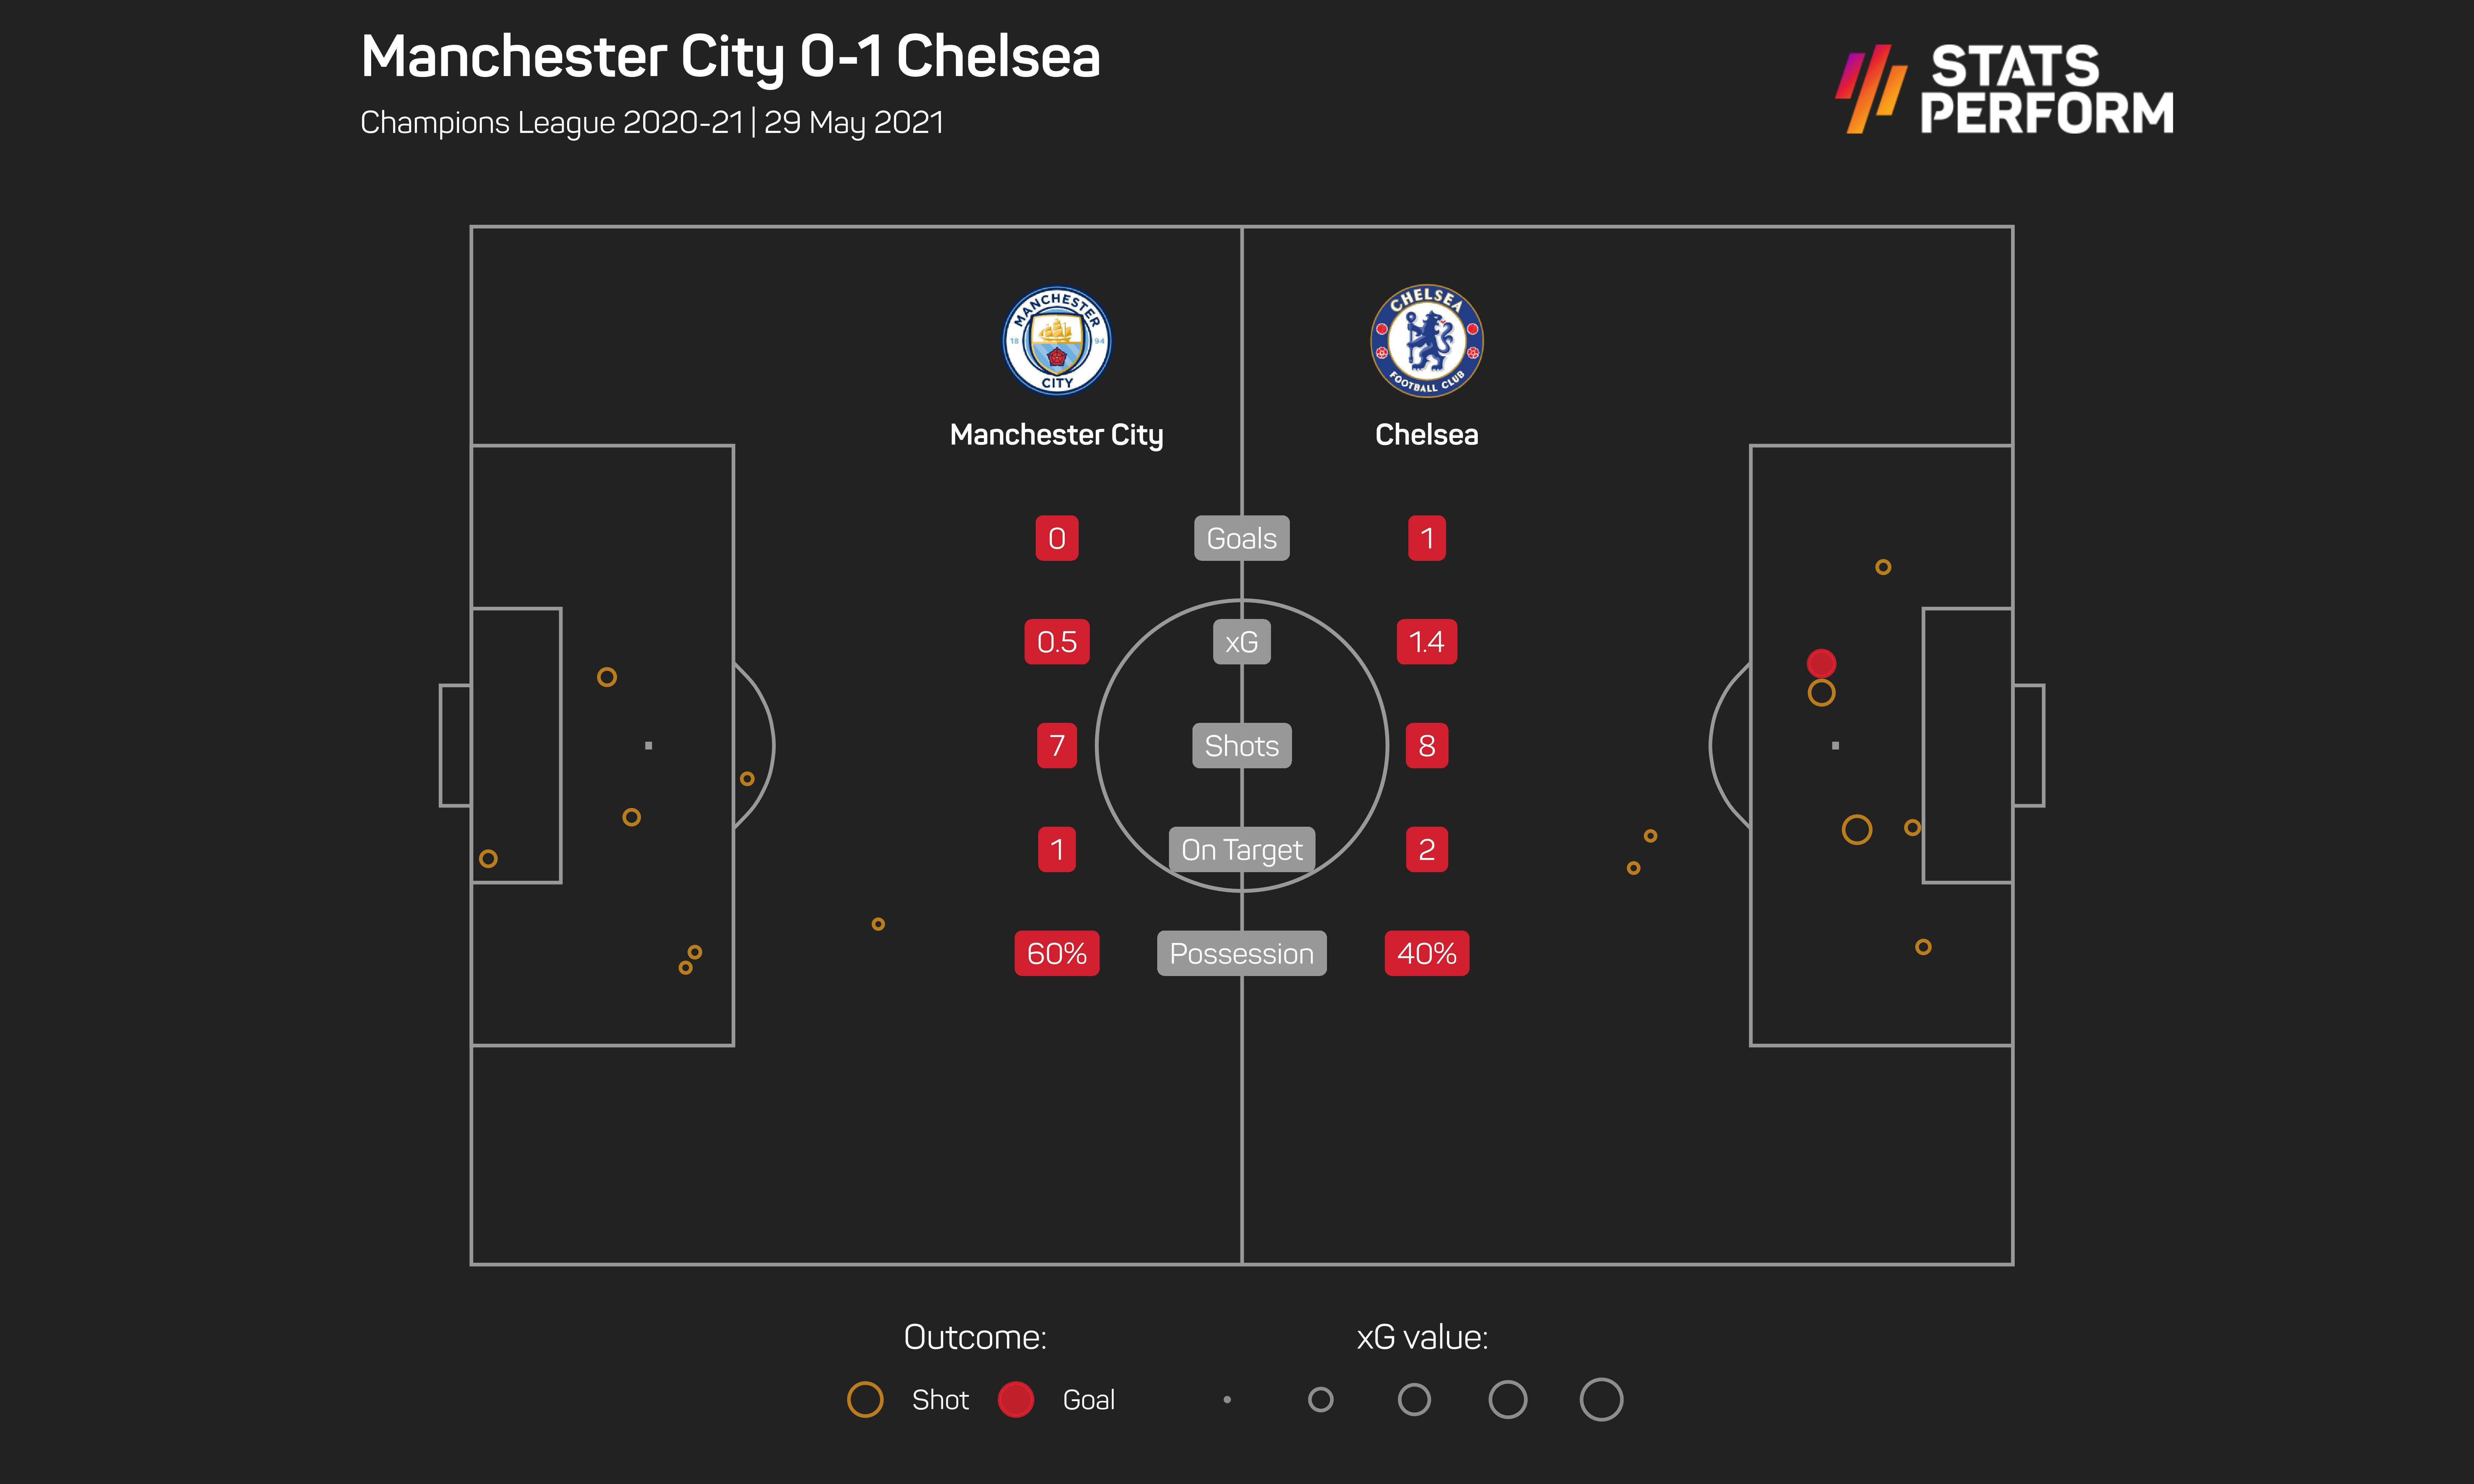 Chelsea Beat Manchester City 1-0 To Win Champions League ...